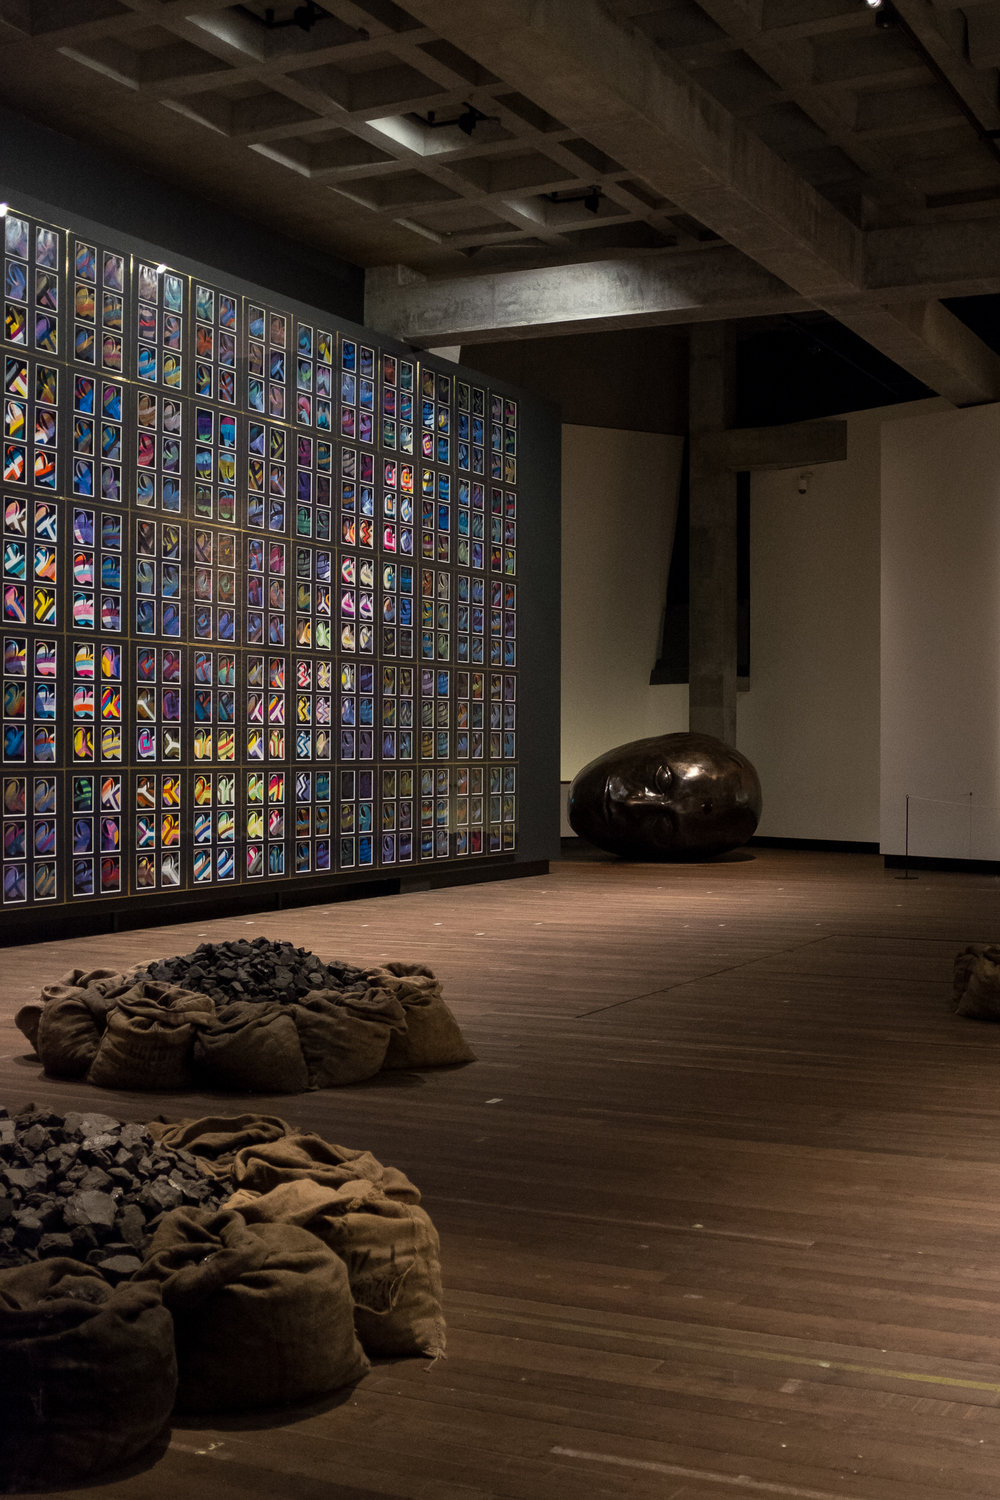 Left: 'Snake', 1970 to 1972  Sir Sidney Nolan (1917, Melbourne, Australia; died 1992, London, England) Mixed media on paper, 1620 sheets  Floor:   'Untitled', 2002  Jannis Kounellis (1936, Piraeus, Greece; lives and works in Rome, Italy) Jute coffee bags, coal  Right:  Artifact, 2010  Gregory Barsamian (Chicago, Illinois, USA, 1953) Steel, foam rubber, paper, acrylic resin